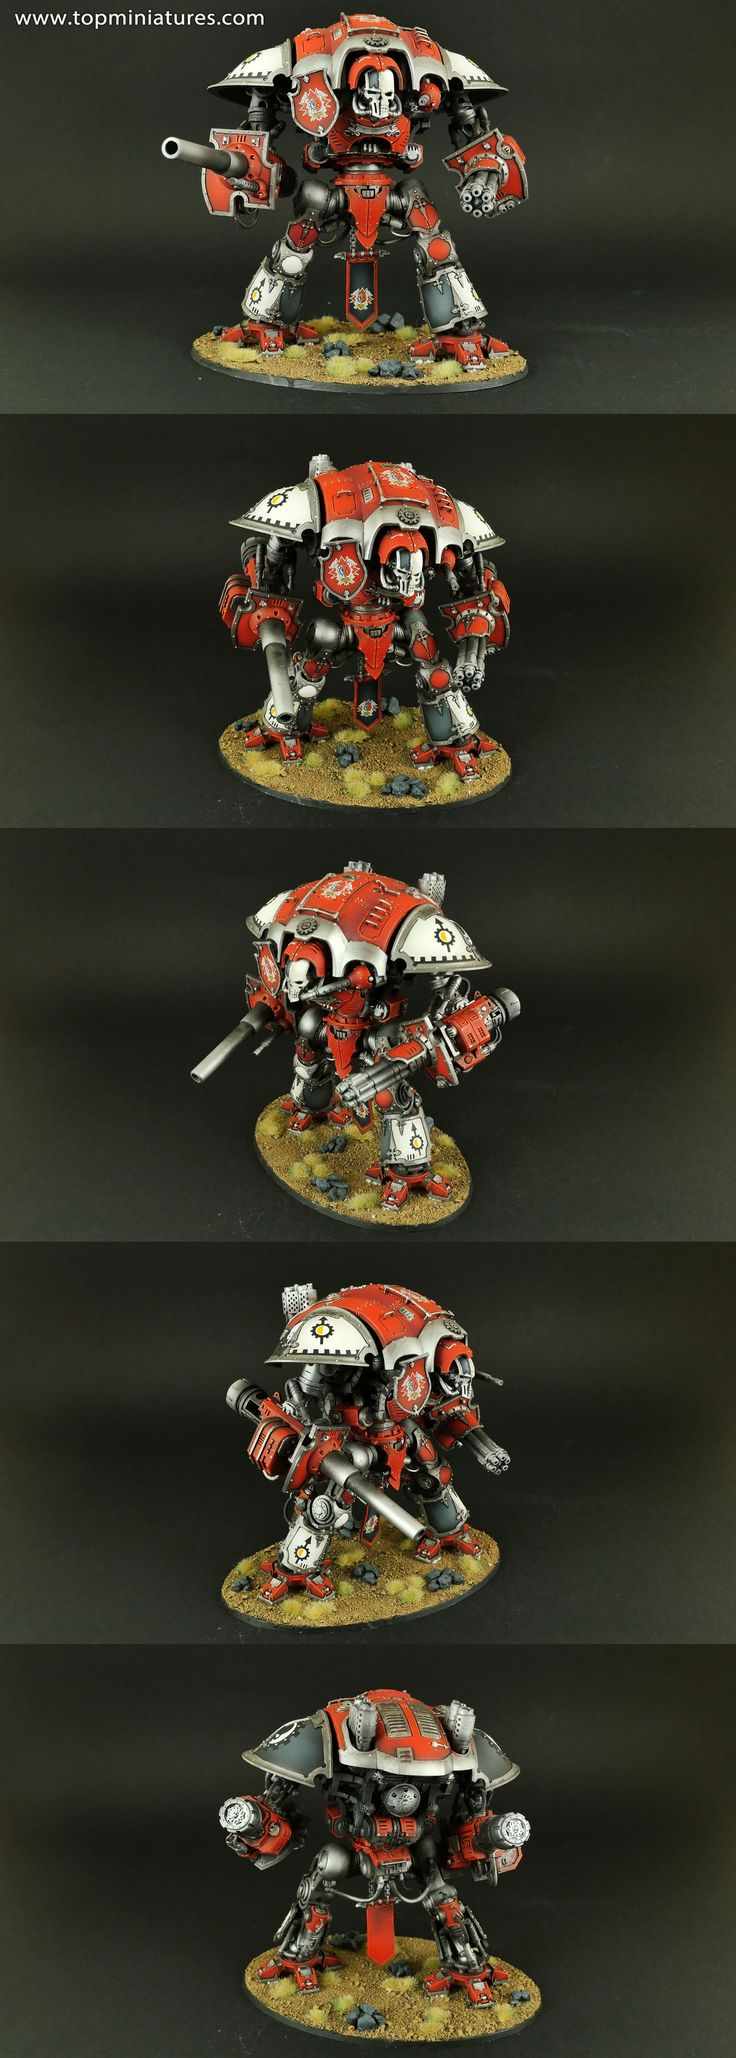 Warhammer 40k white black red imperial knight